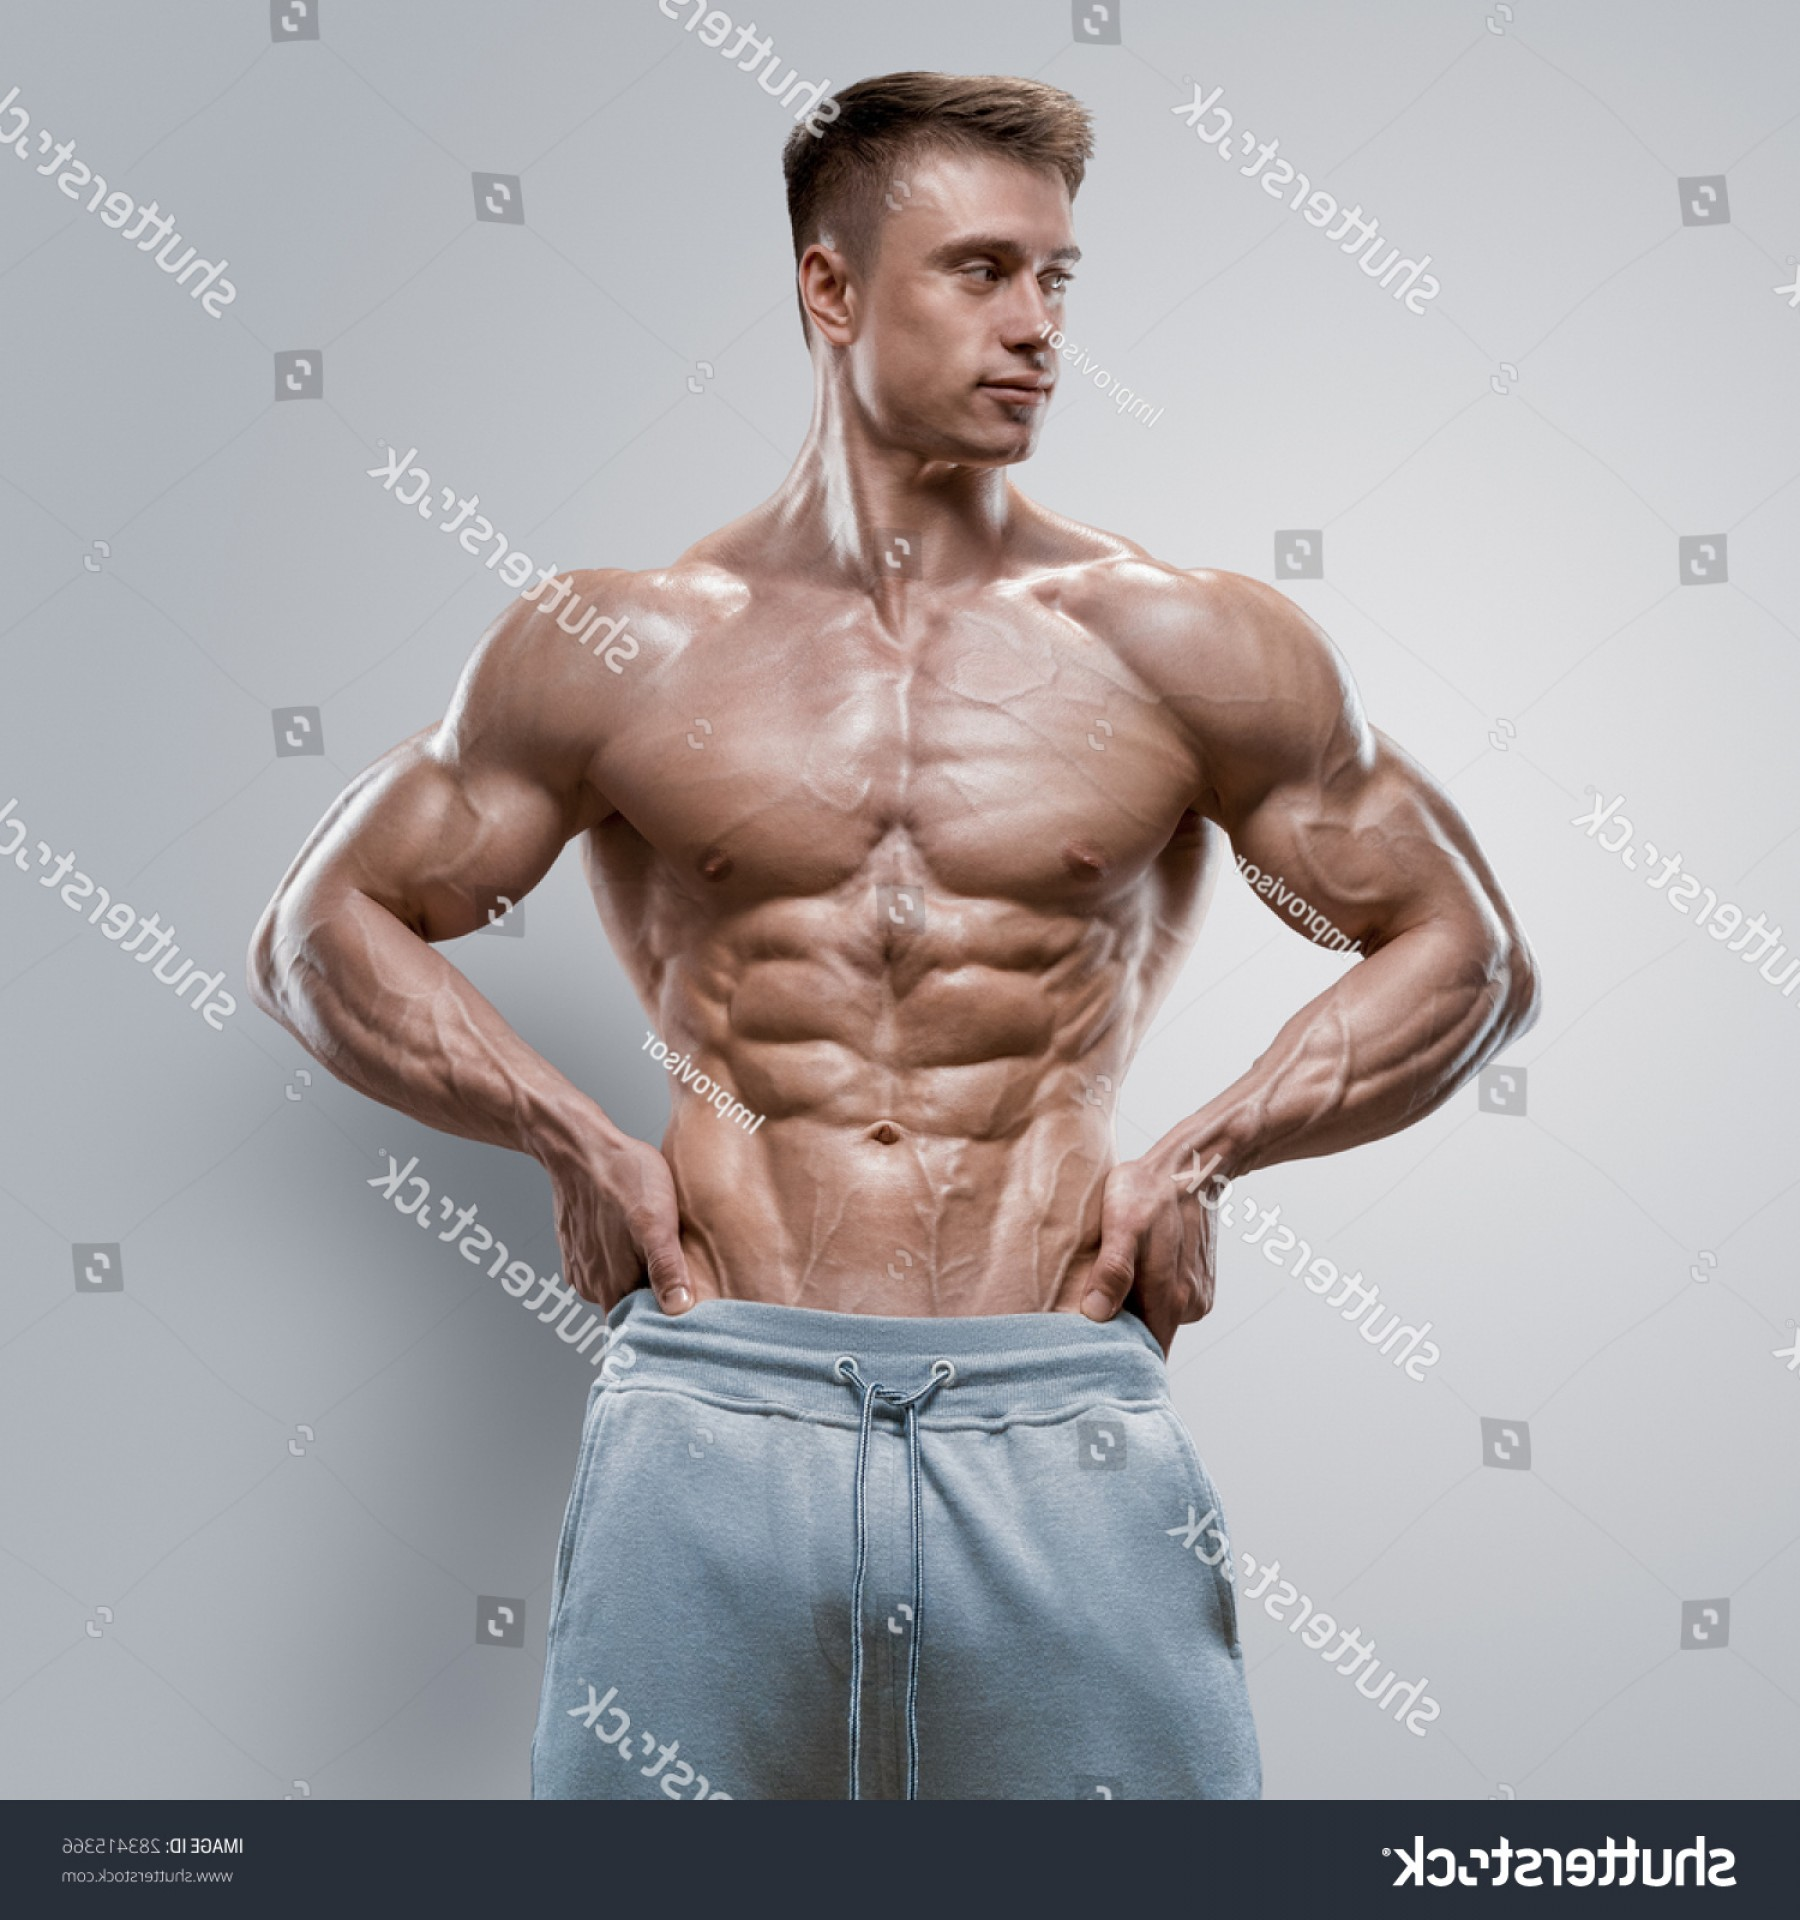 Vector Abstract Woman Bodybuilder Physique: Handsome Power Athletic Young Man Great